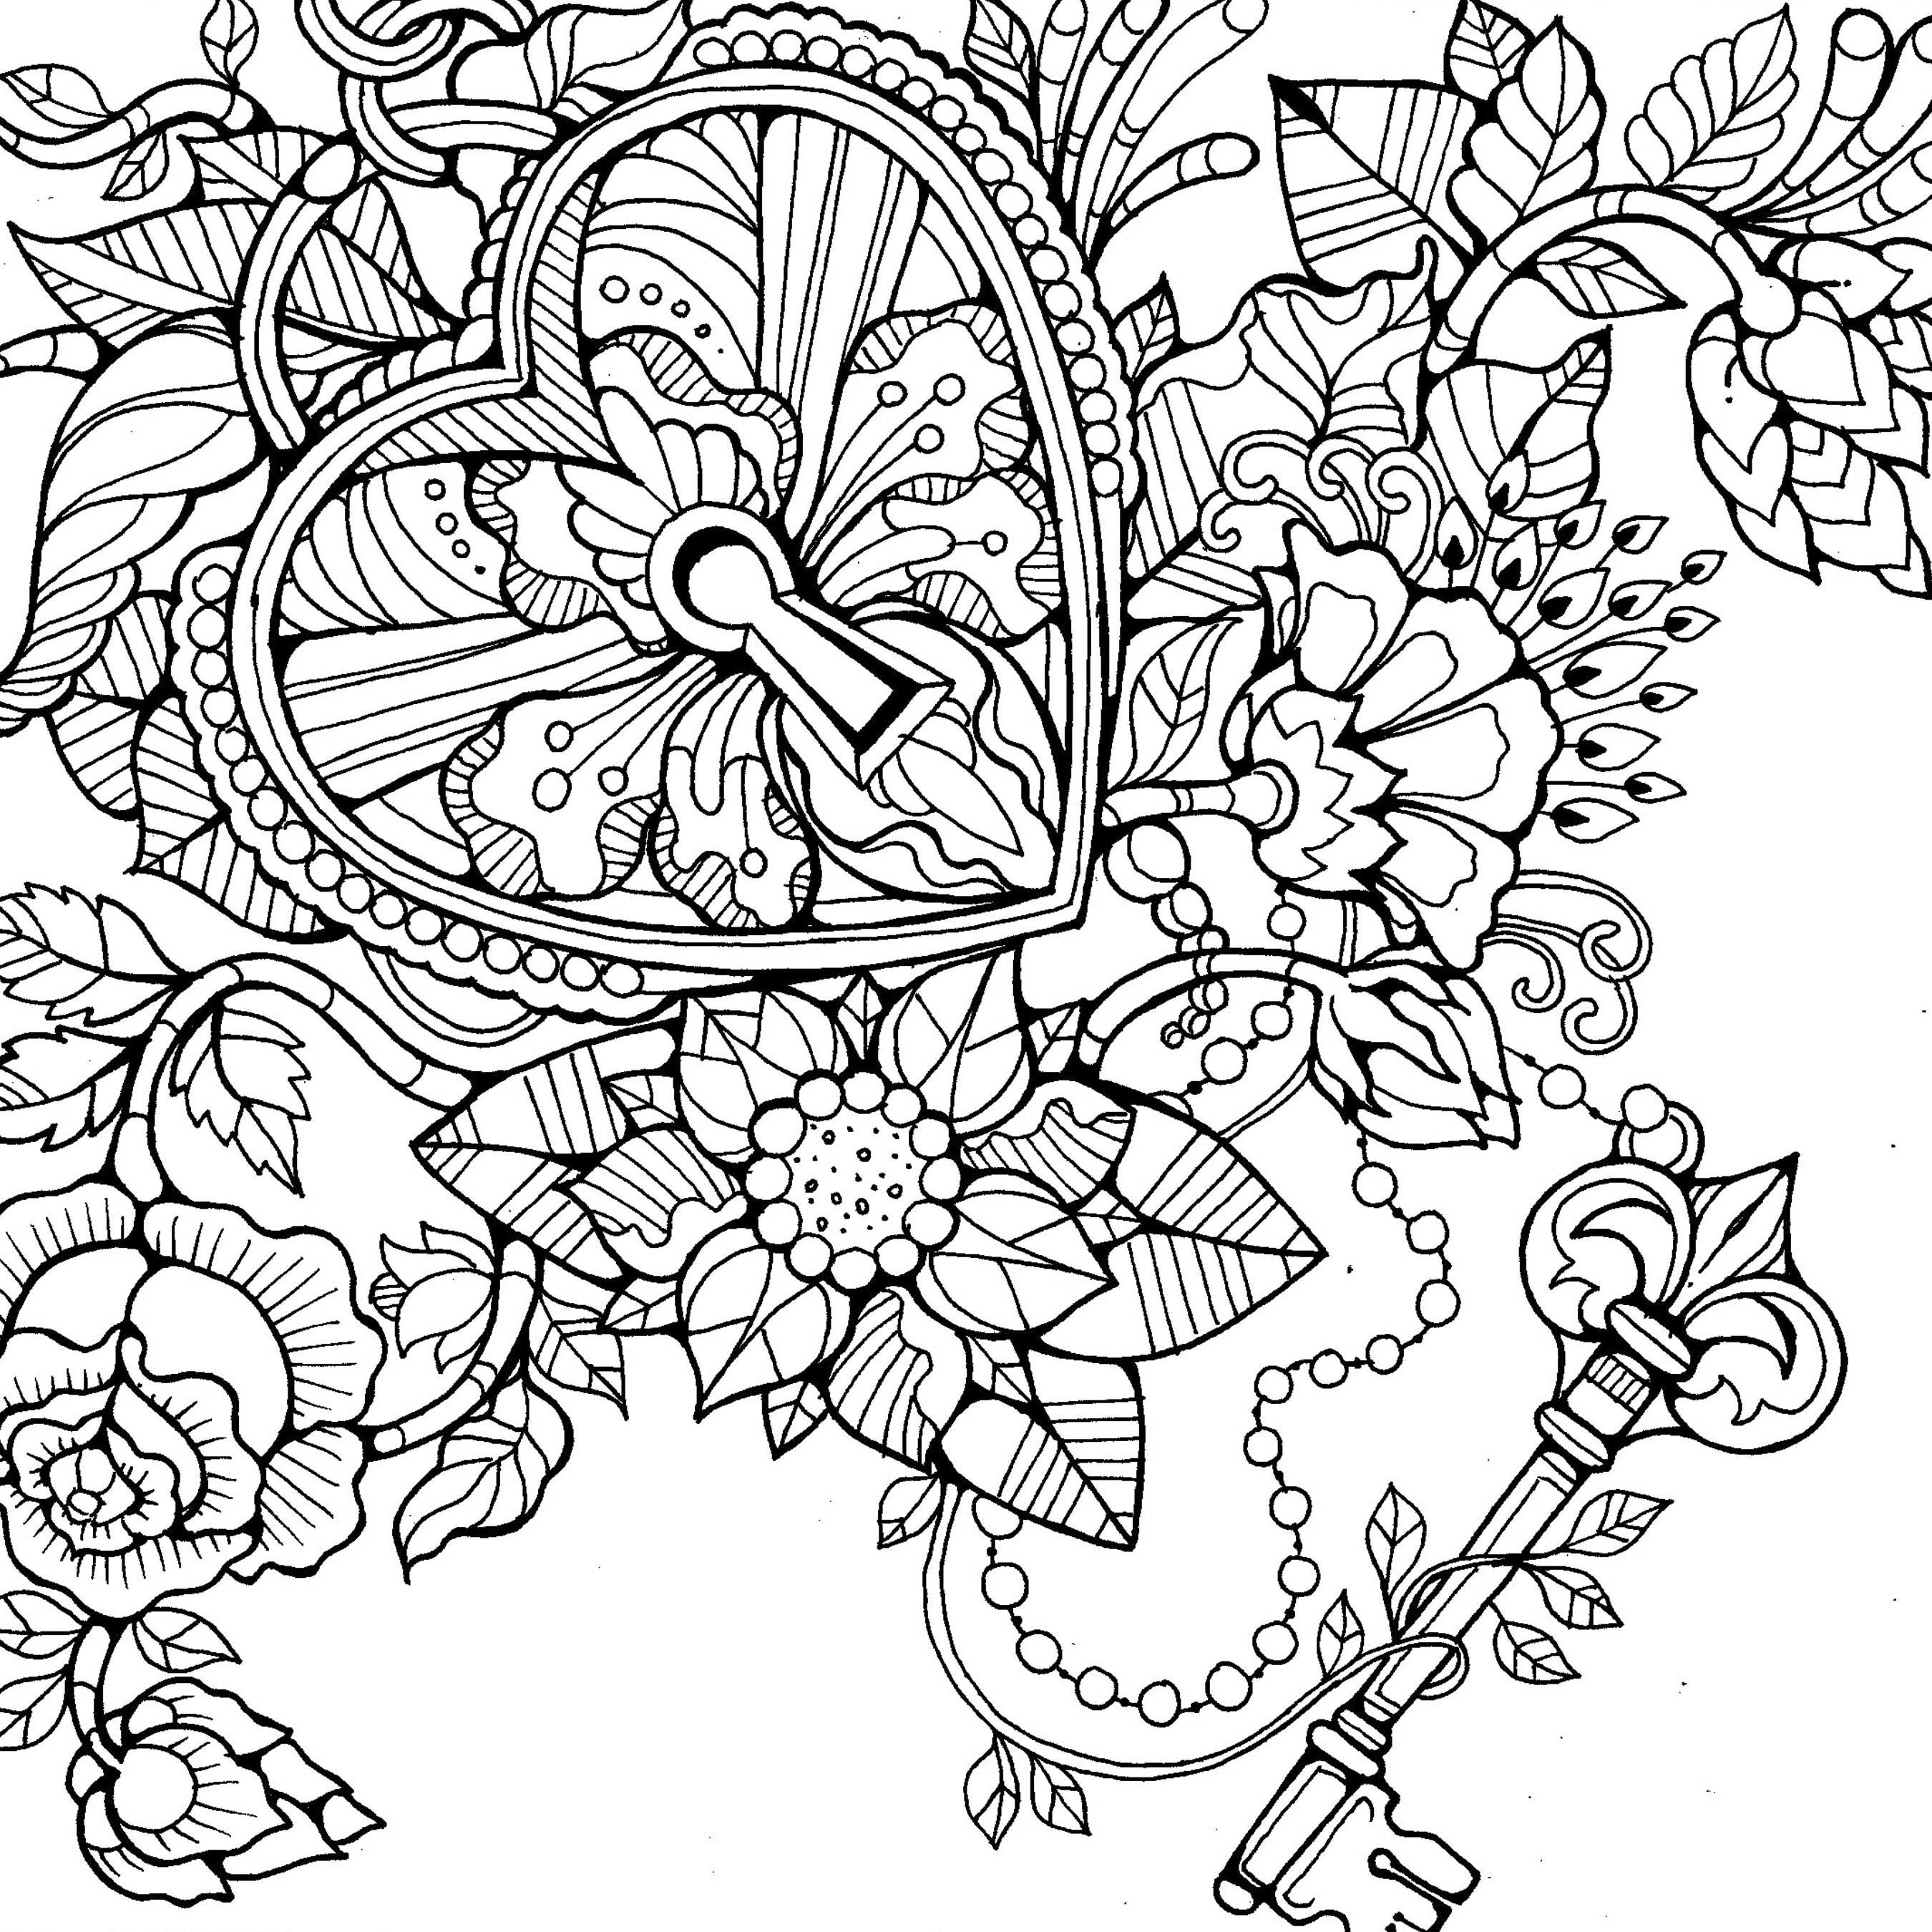 Colouring Pages by Dee Mans on Behance | Coloring Pages (Everything ...